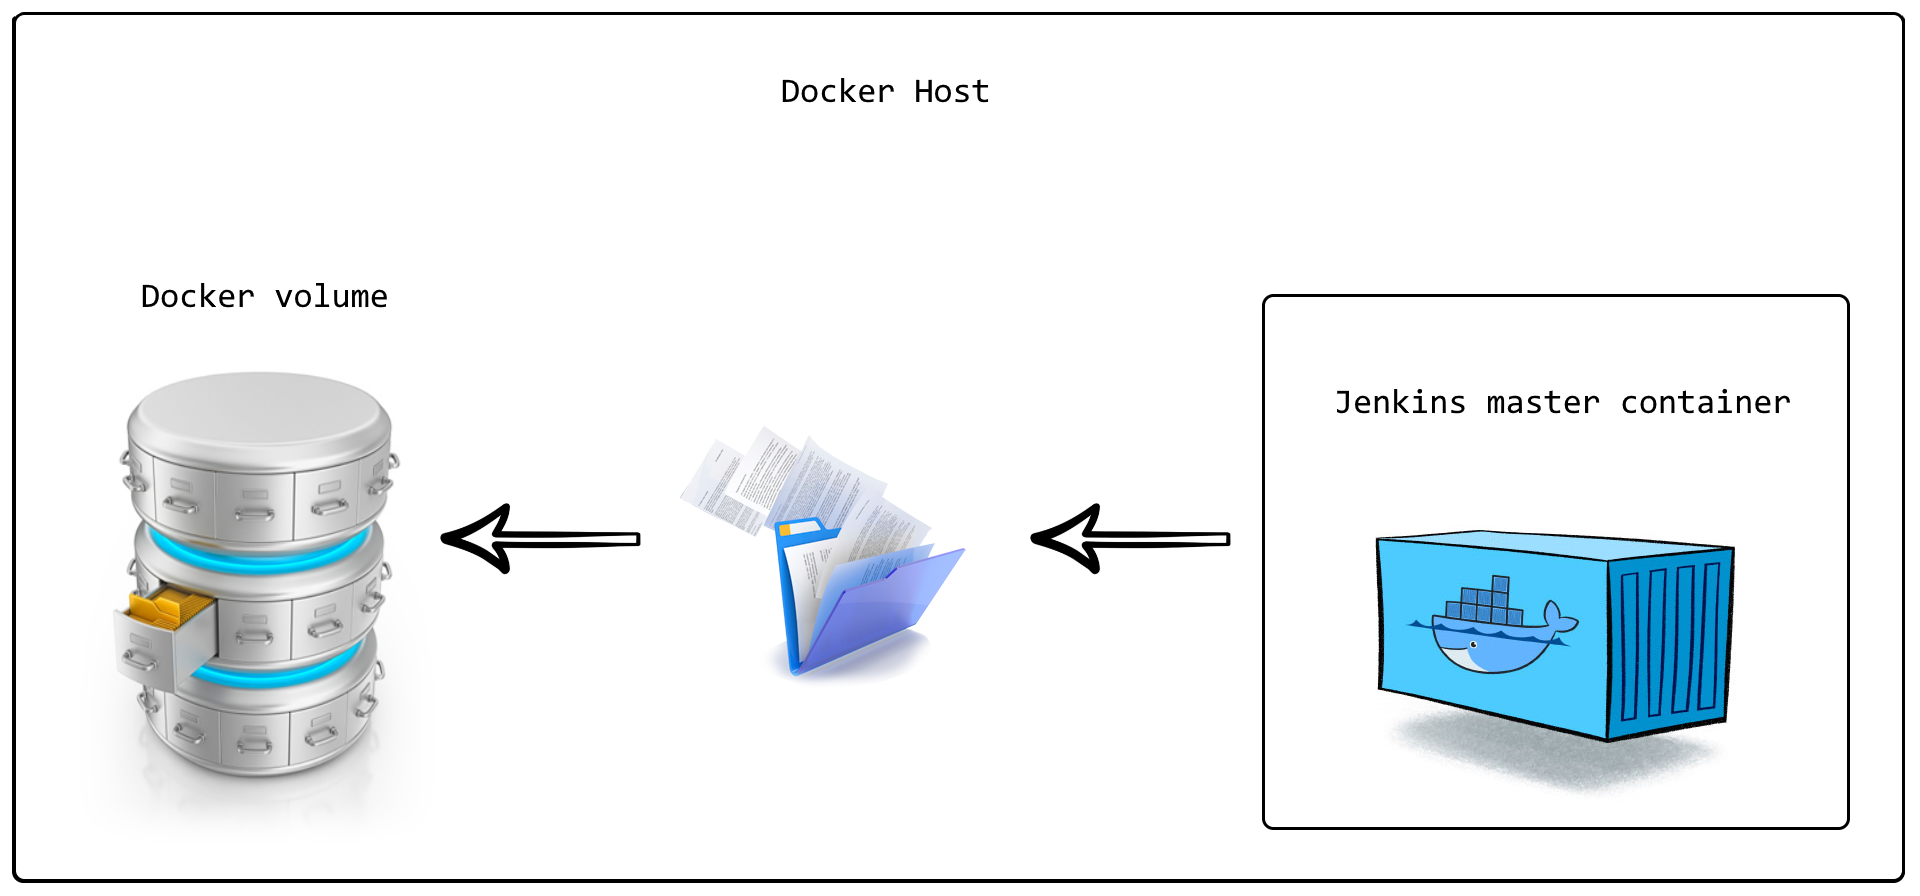 Using a Docker volume to persist the data from the container